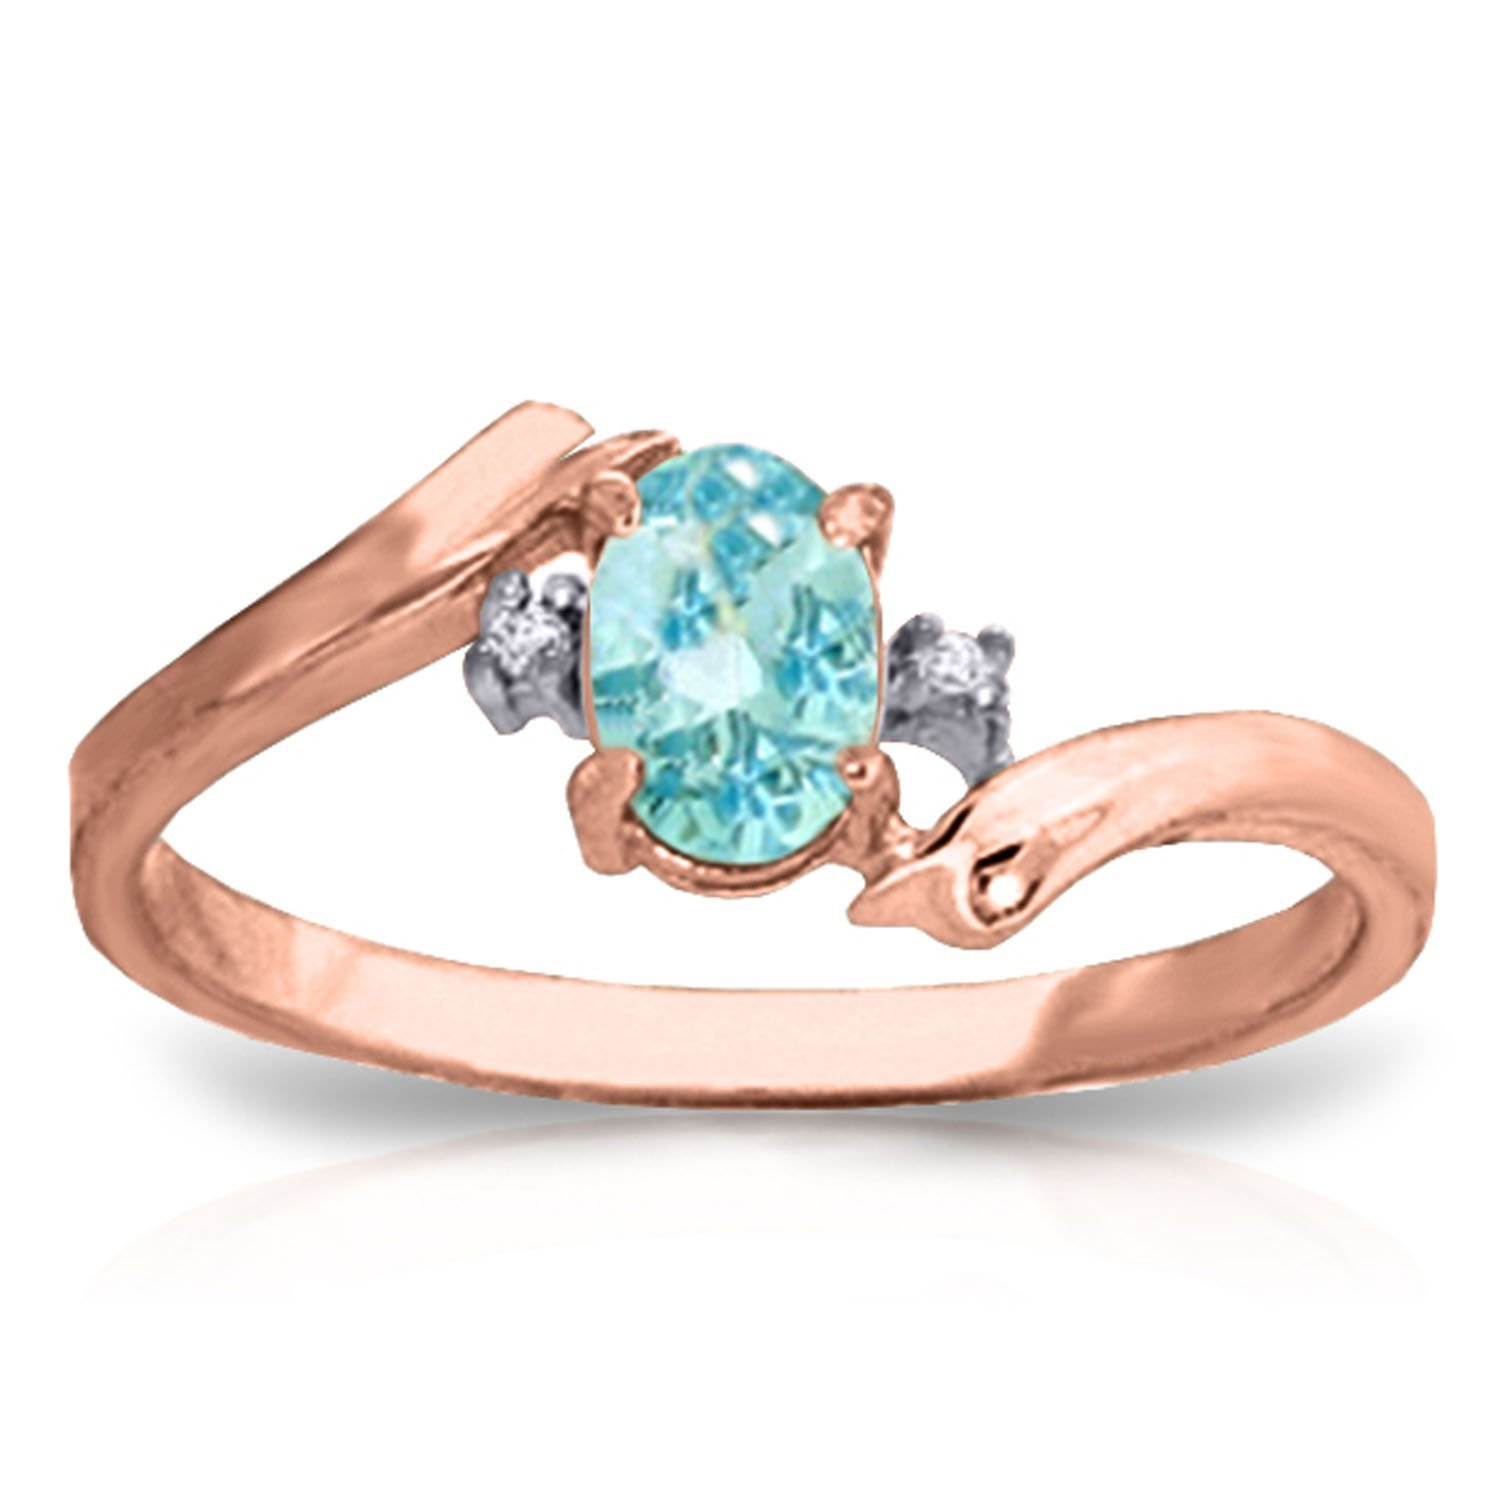 0.46 Carat 14k Solid Rose Gold Ring with Natural Diamonds and Oval-shaped Blue Topaz - Size 6.5